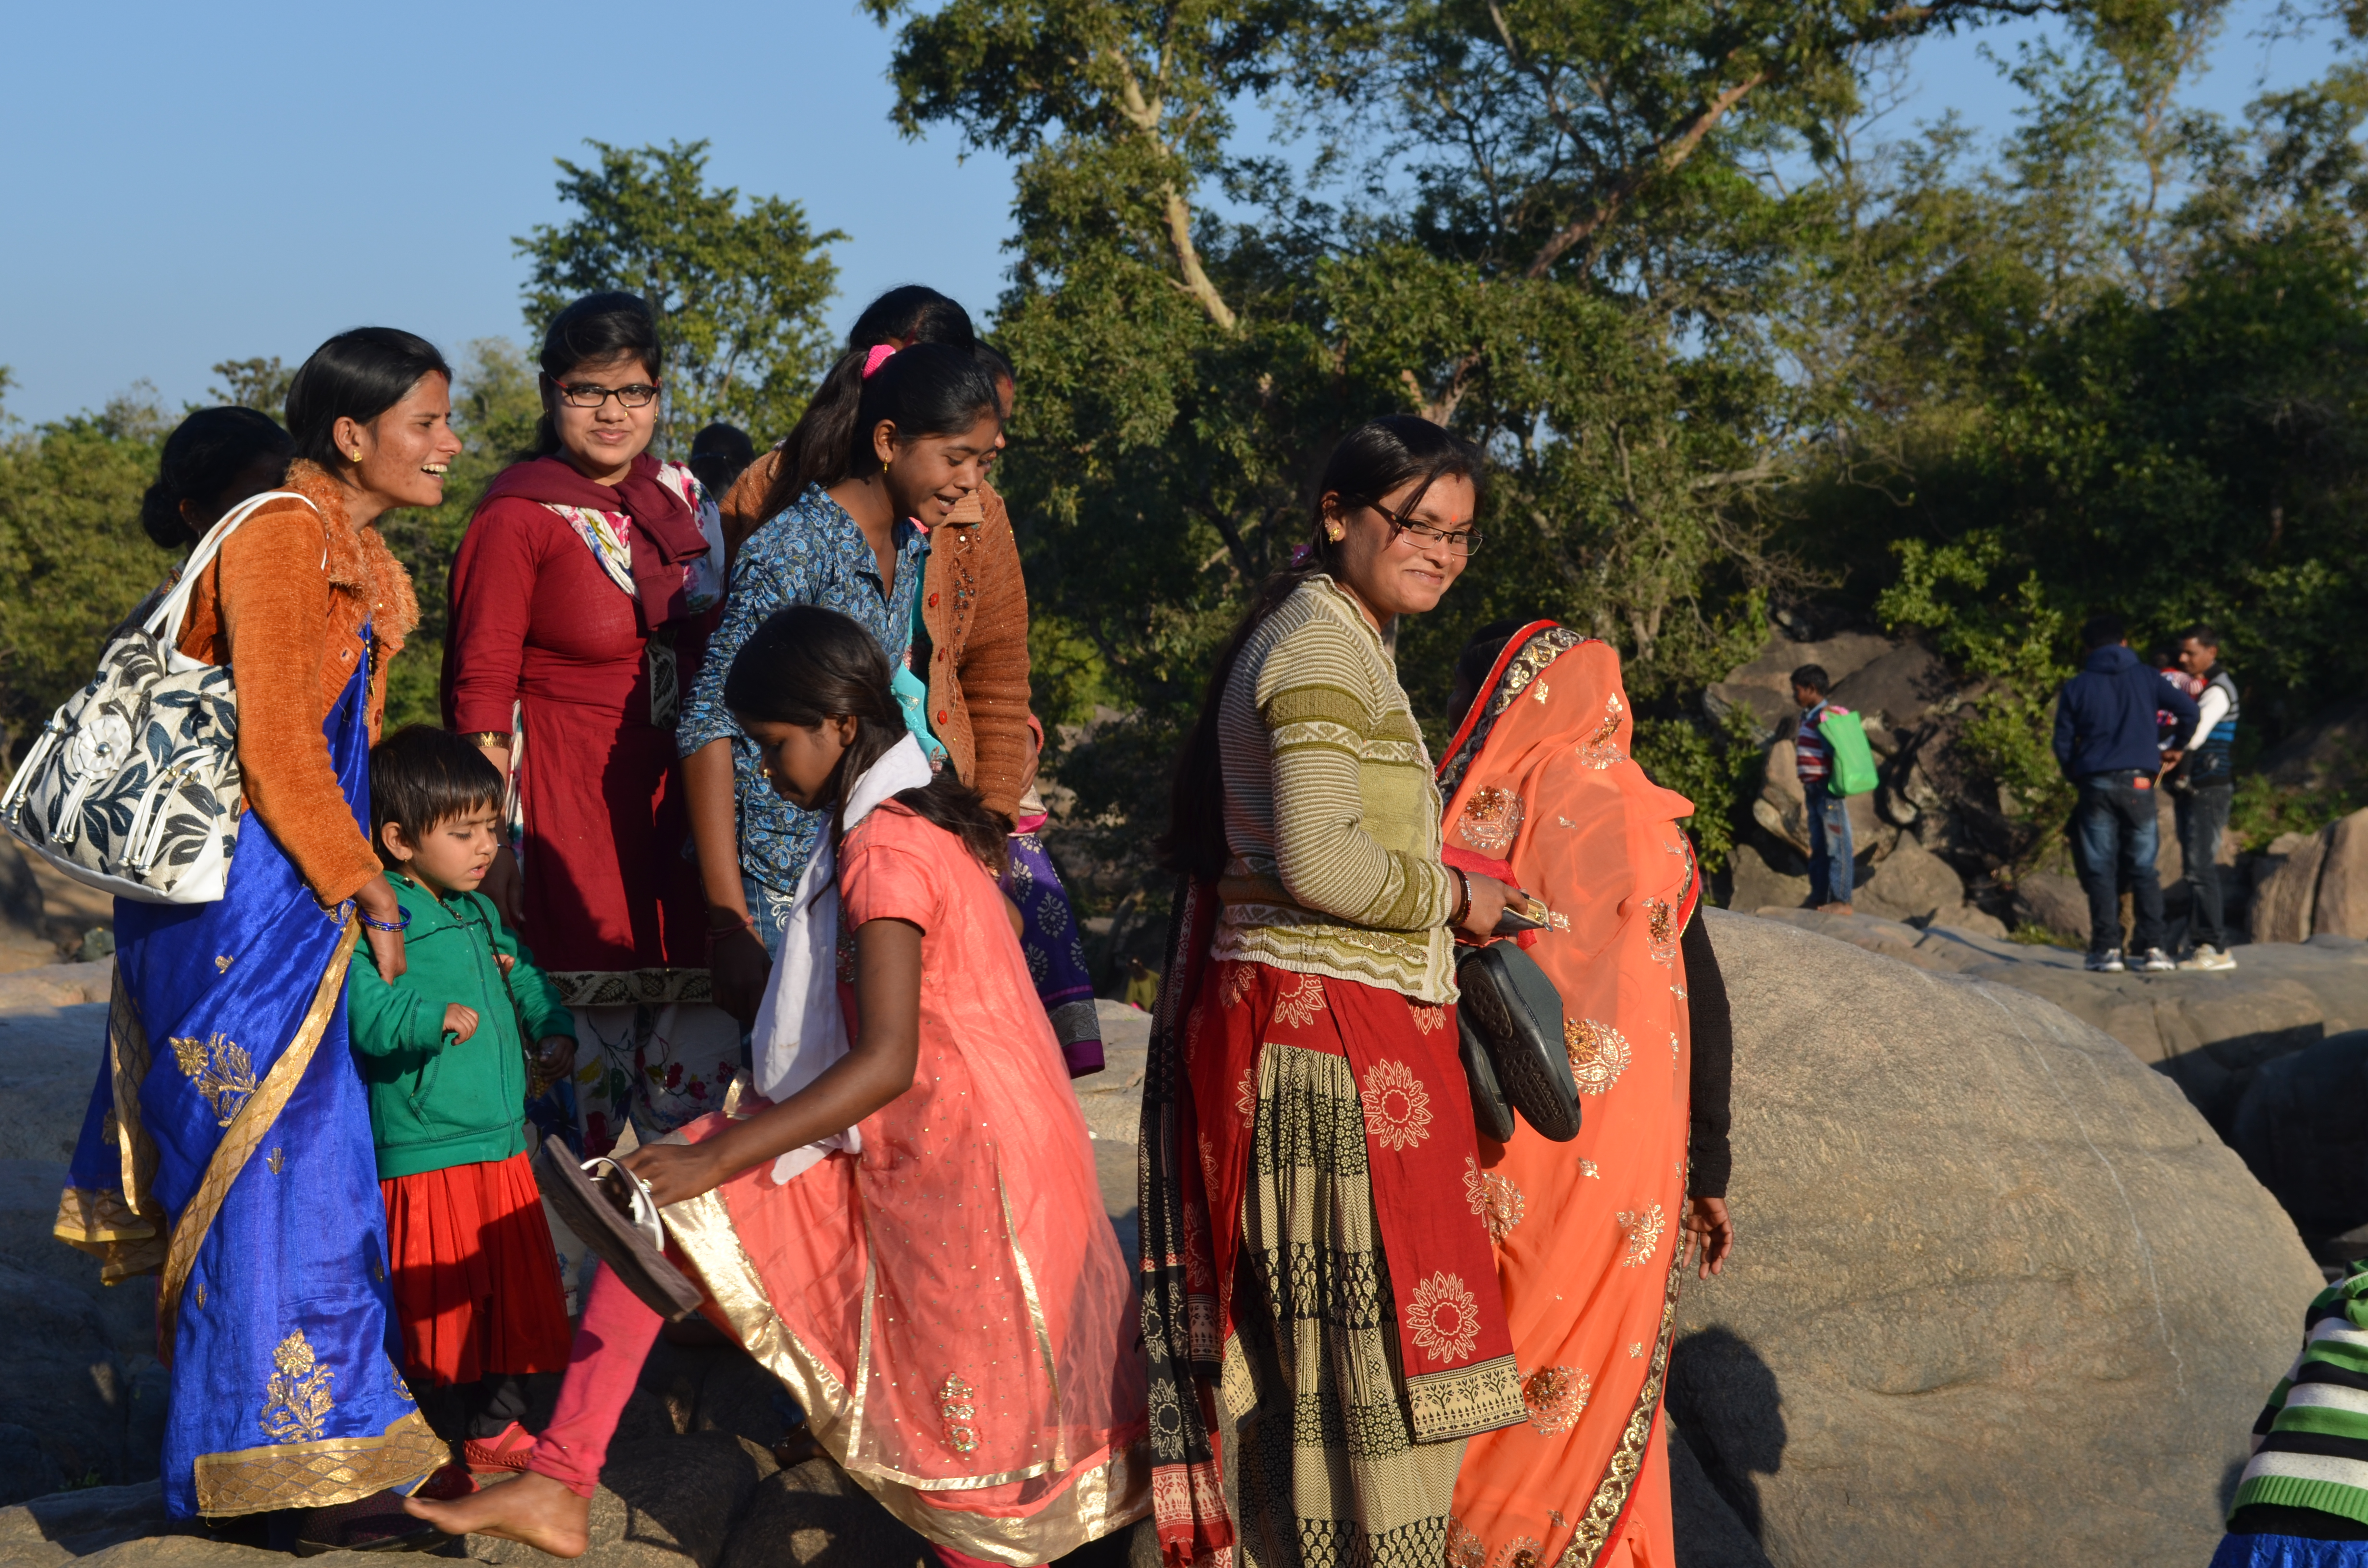 Old traditions still hang on. Along the Banjar River, just outside the park, families gather in their finest clothes for the festival of Makar Sankranti, marking the end of winter.